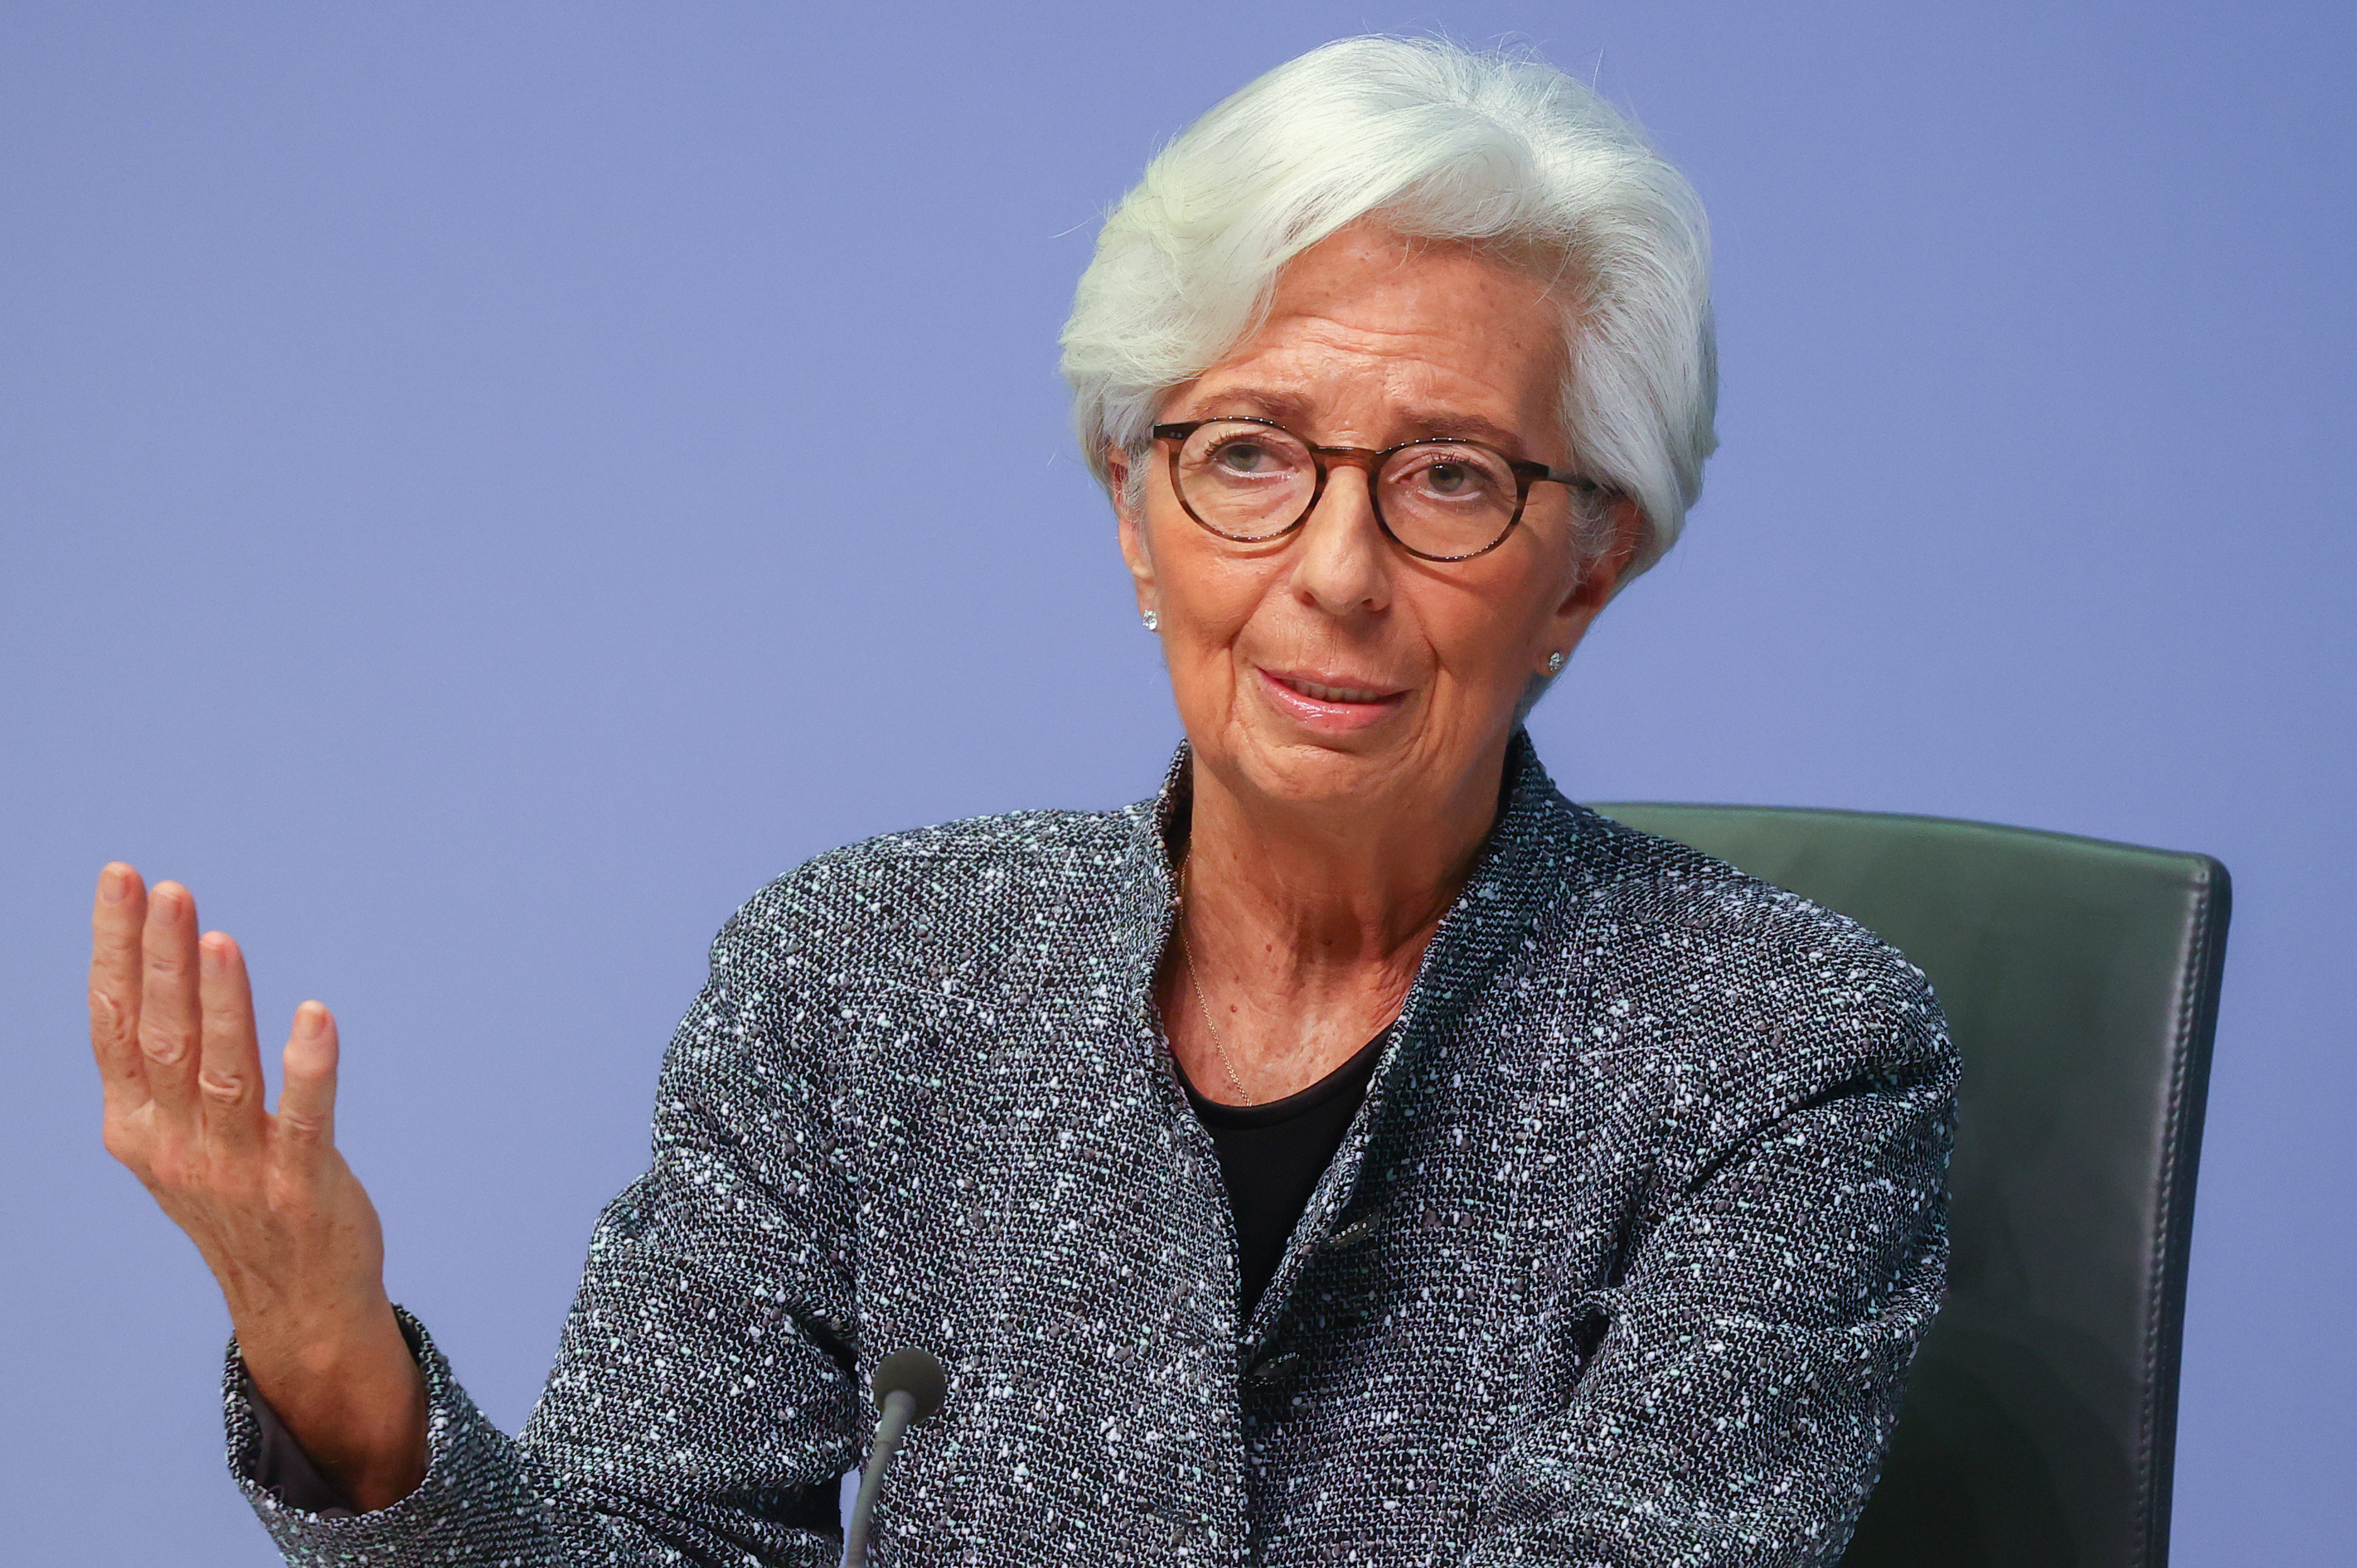 European Central Bank (ECB) President Christine Lagarde gestures as she addresses a news conference on the outcome of the meeting of the Governing Council, in Frankfurt, Germany, March 12, 2020. REUTERS/Kai Pfaffenbach - RC2EIF93851P